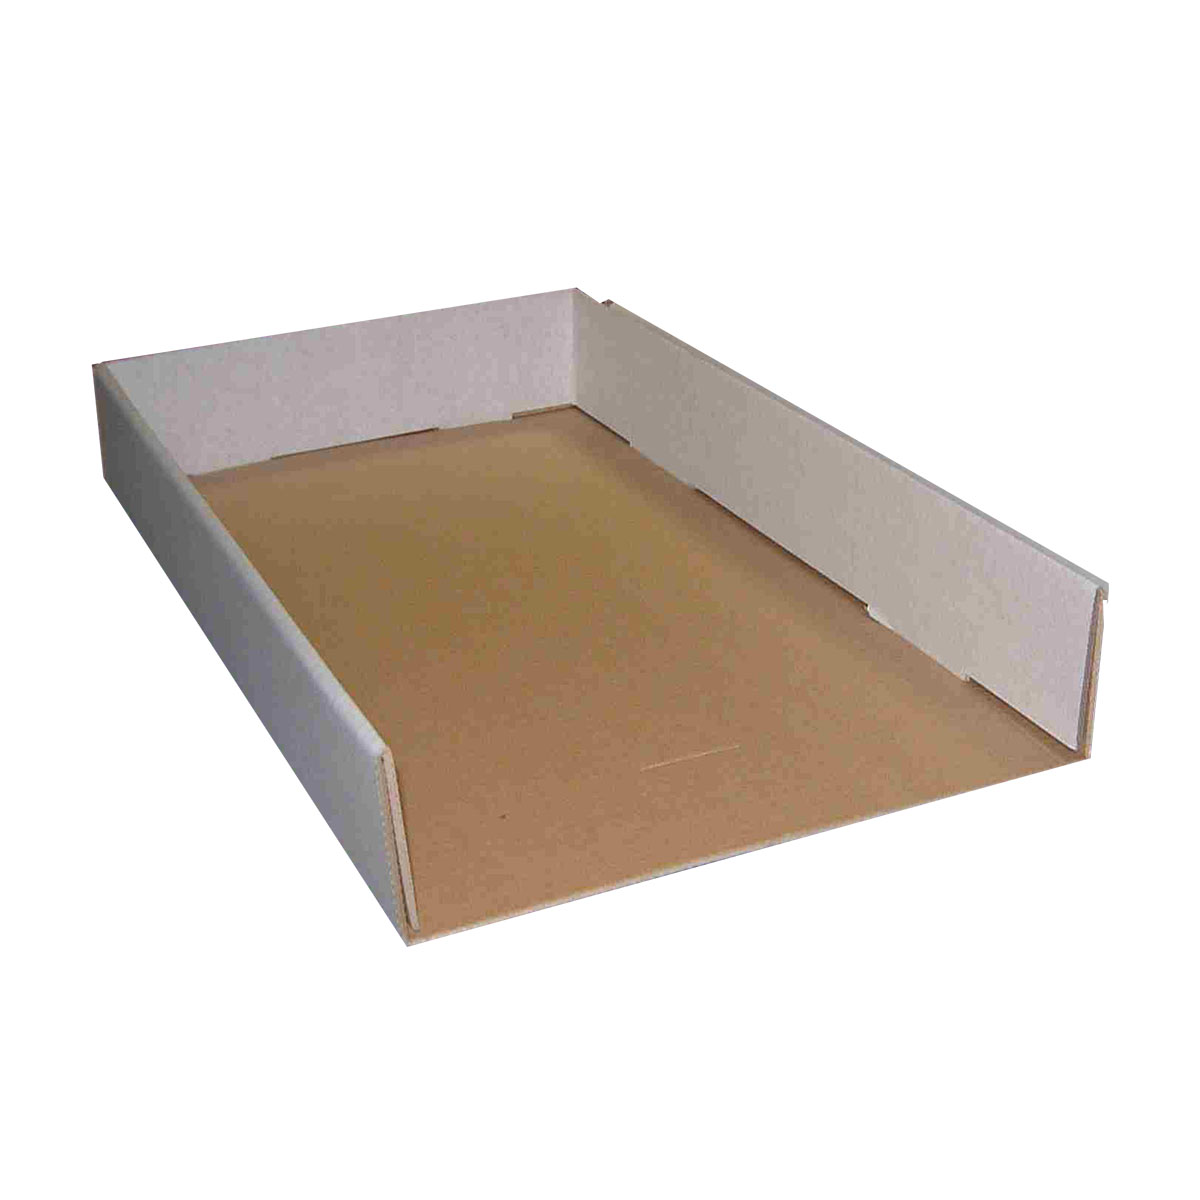 Cardboard Transportation Trays Image